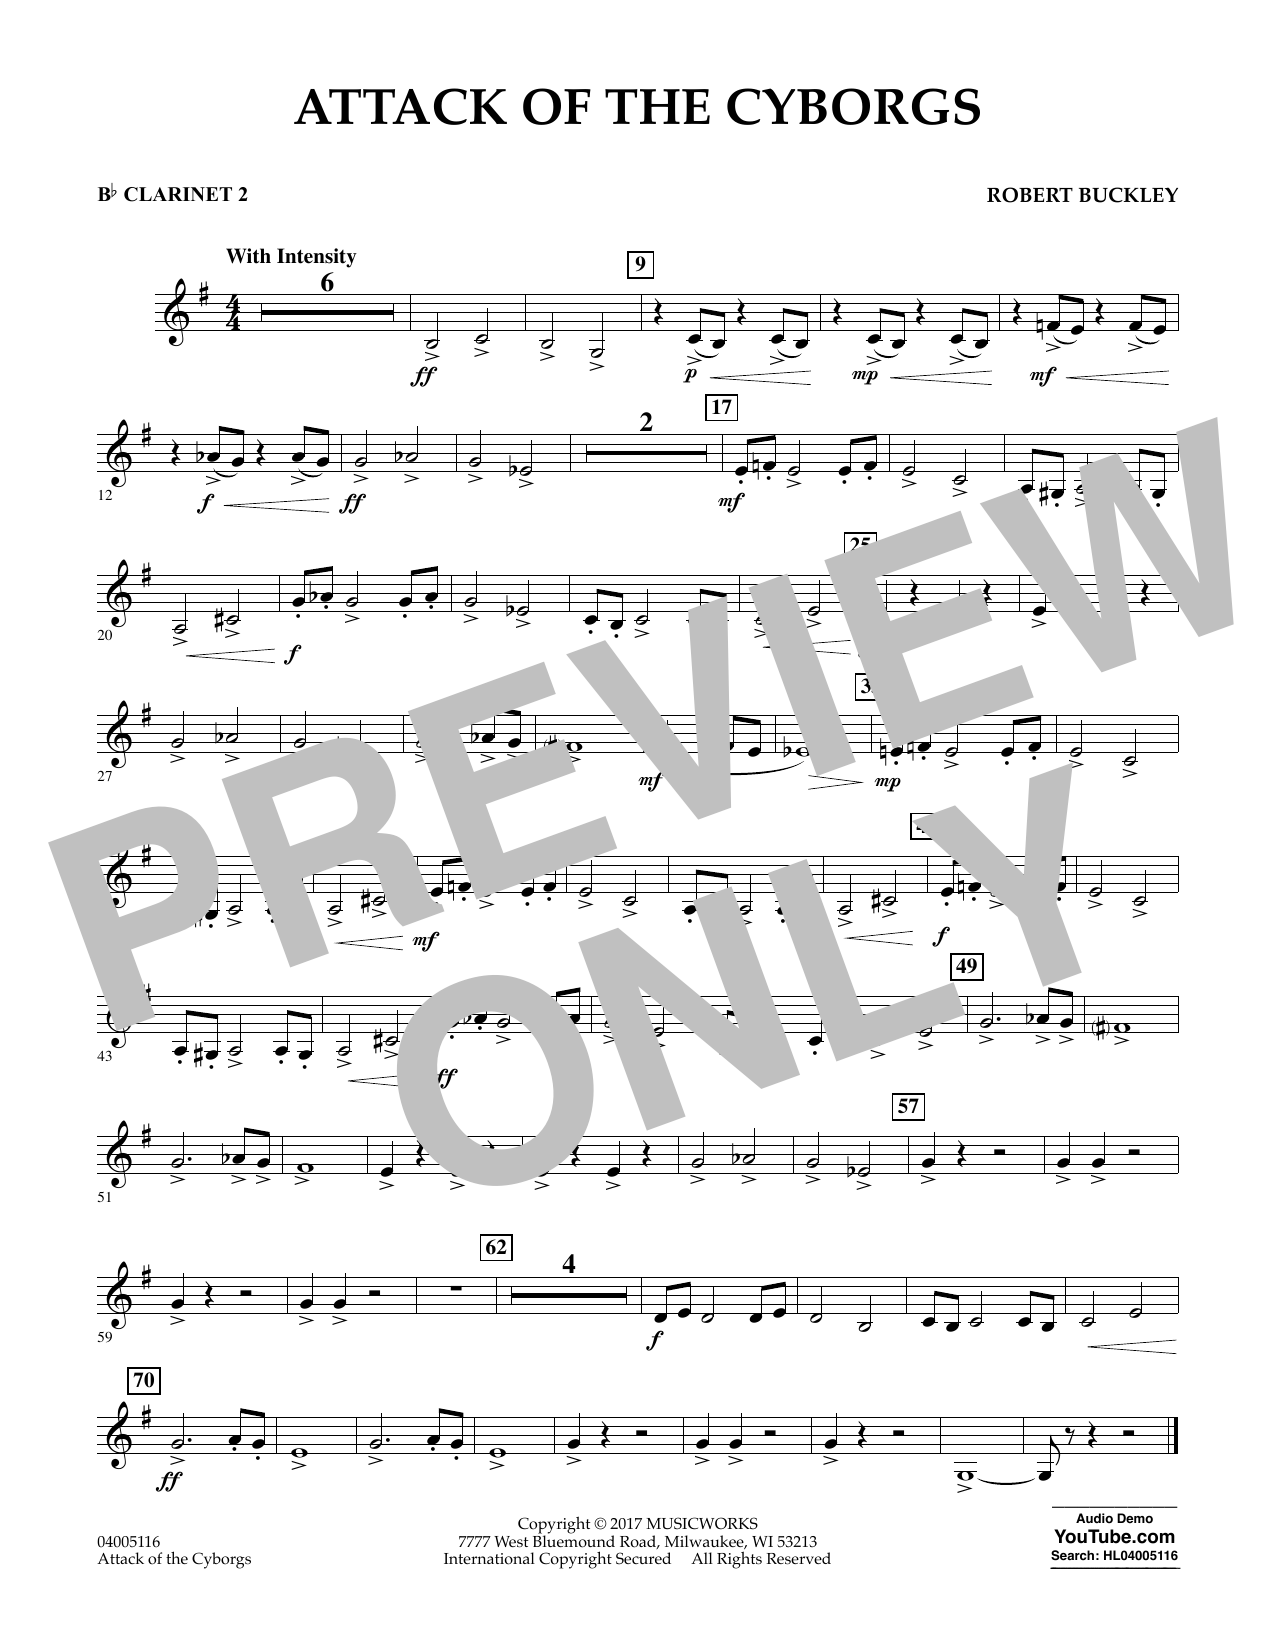 Robert Buckley Attack of the Cyborgs - Bb Clarinet 2 sheet music notes and chords. Download Printable PDF.